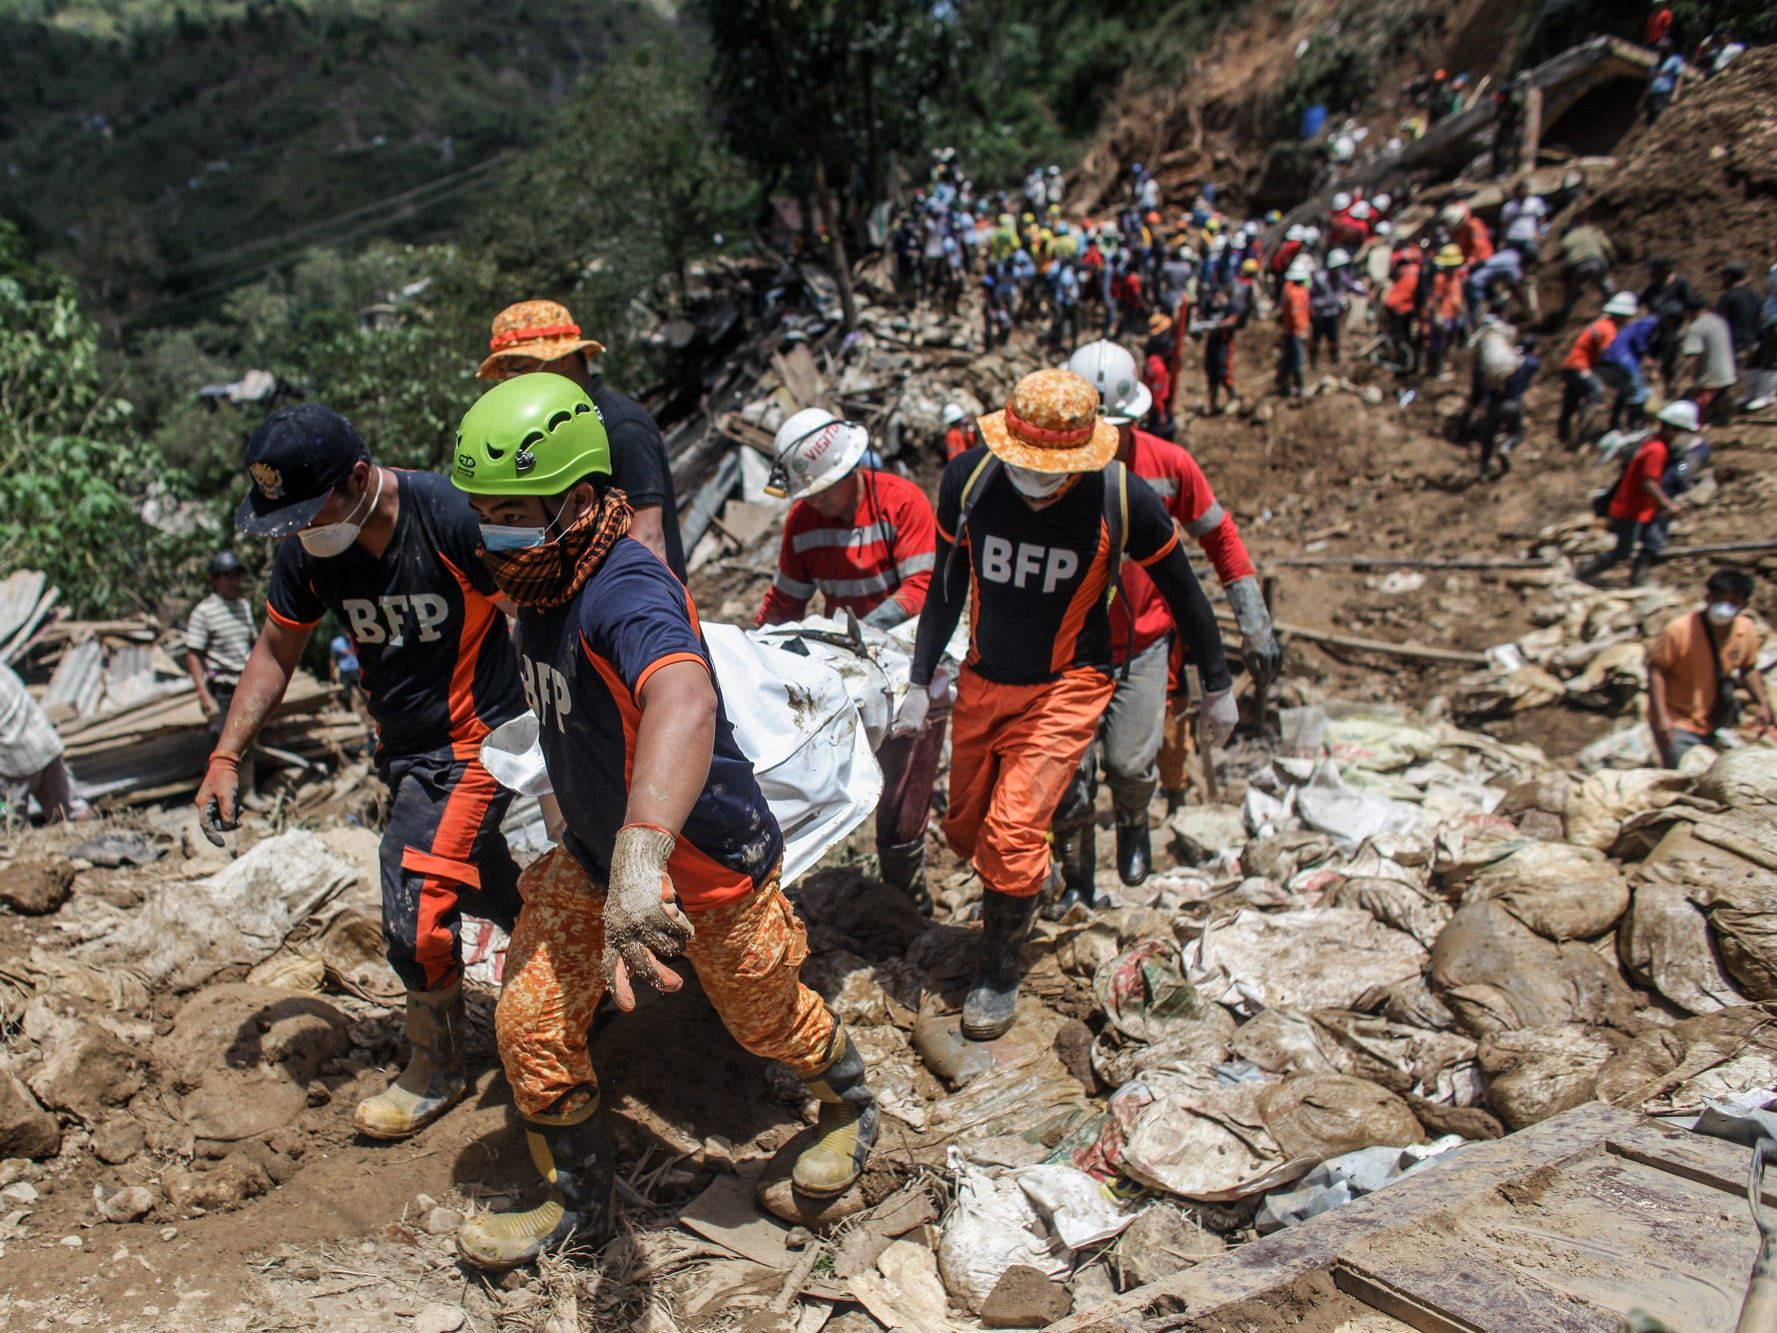 Filipino rescuers carry a body of a person inside a body bag at the site where people were believed to have been buried by a landslide on Sept. 18, 2018 in in Itogon, Benguet province, Philippines. At least 36 people are feared to be buried by a landslide in the mining town of Itogon, in Benghuet province, after Super Typhoon Mangkhut triggered a massive landslide in northern Philippines which destroyed hundreds of homes and killed over 60 people. The storm slammed into the main Philippine island of Luzon over the weekend and continued its path through Hong Kong and Southern China, killing four people in the province of Guangdong as 2.5 million people were evacuated in Guangdong and on Hainan island.